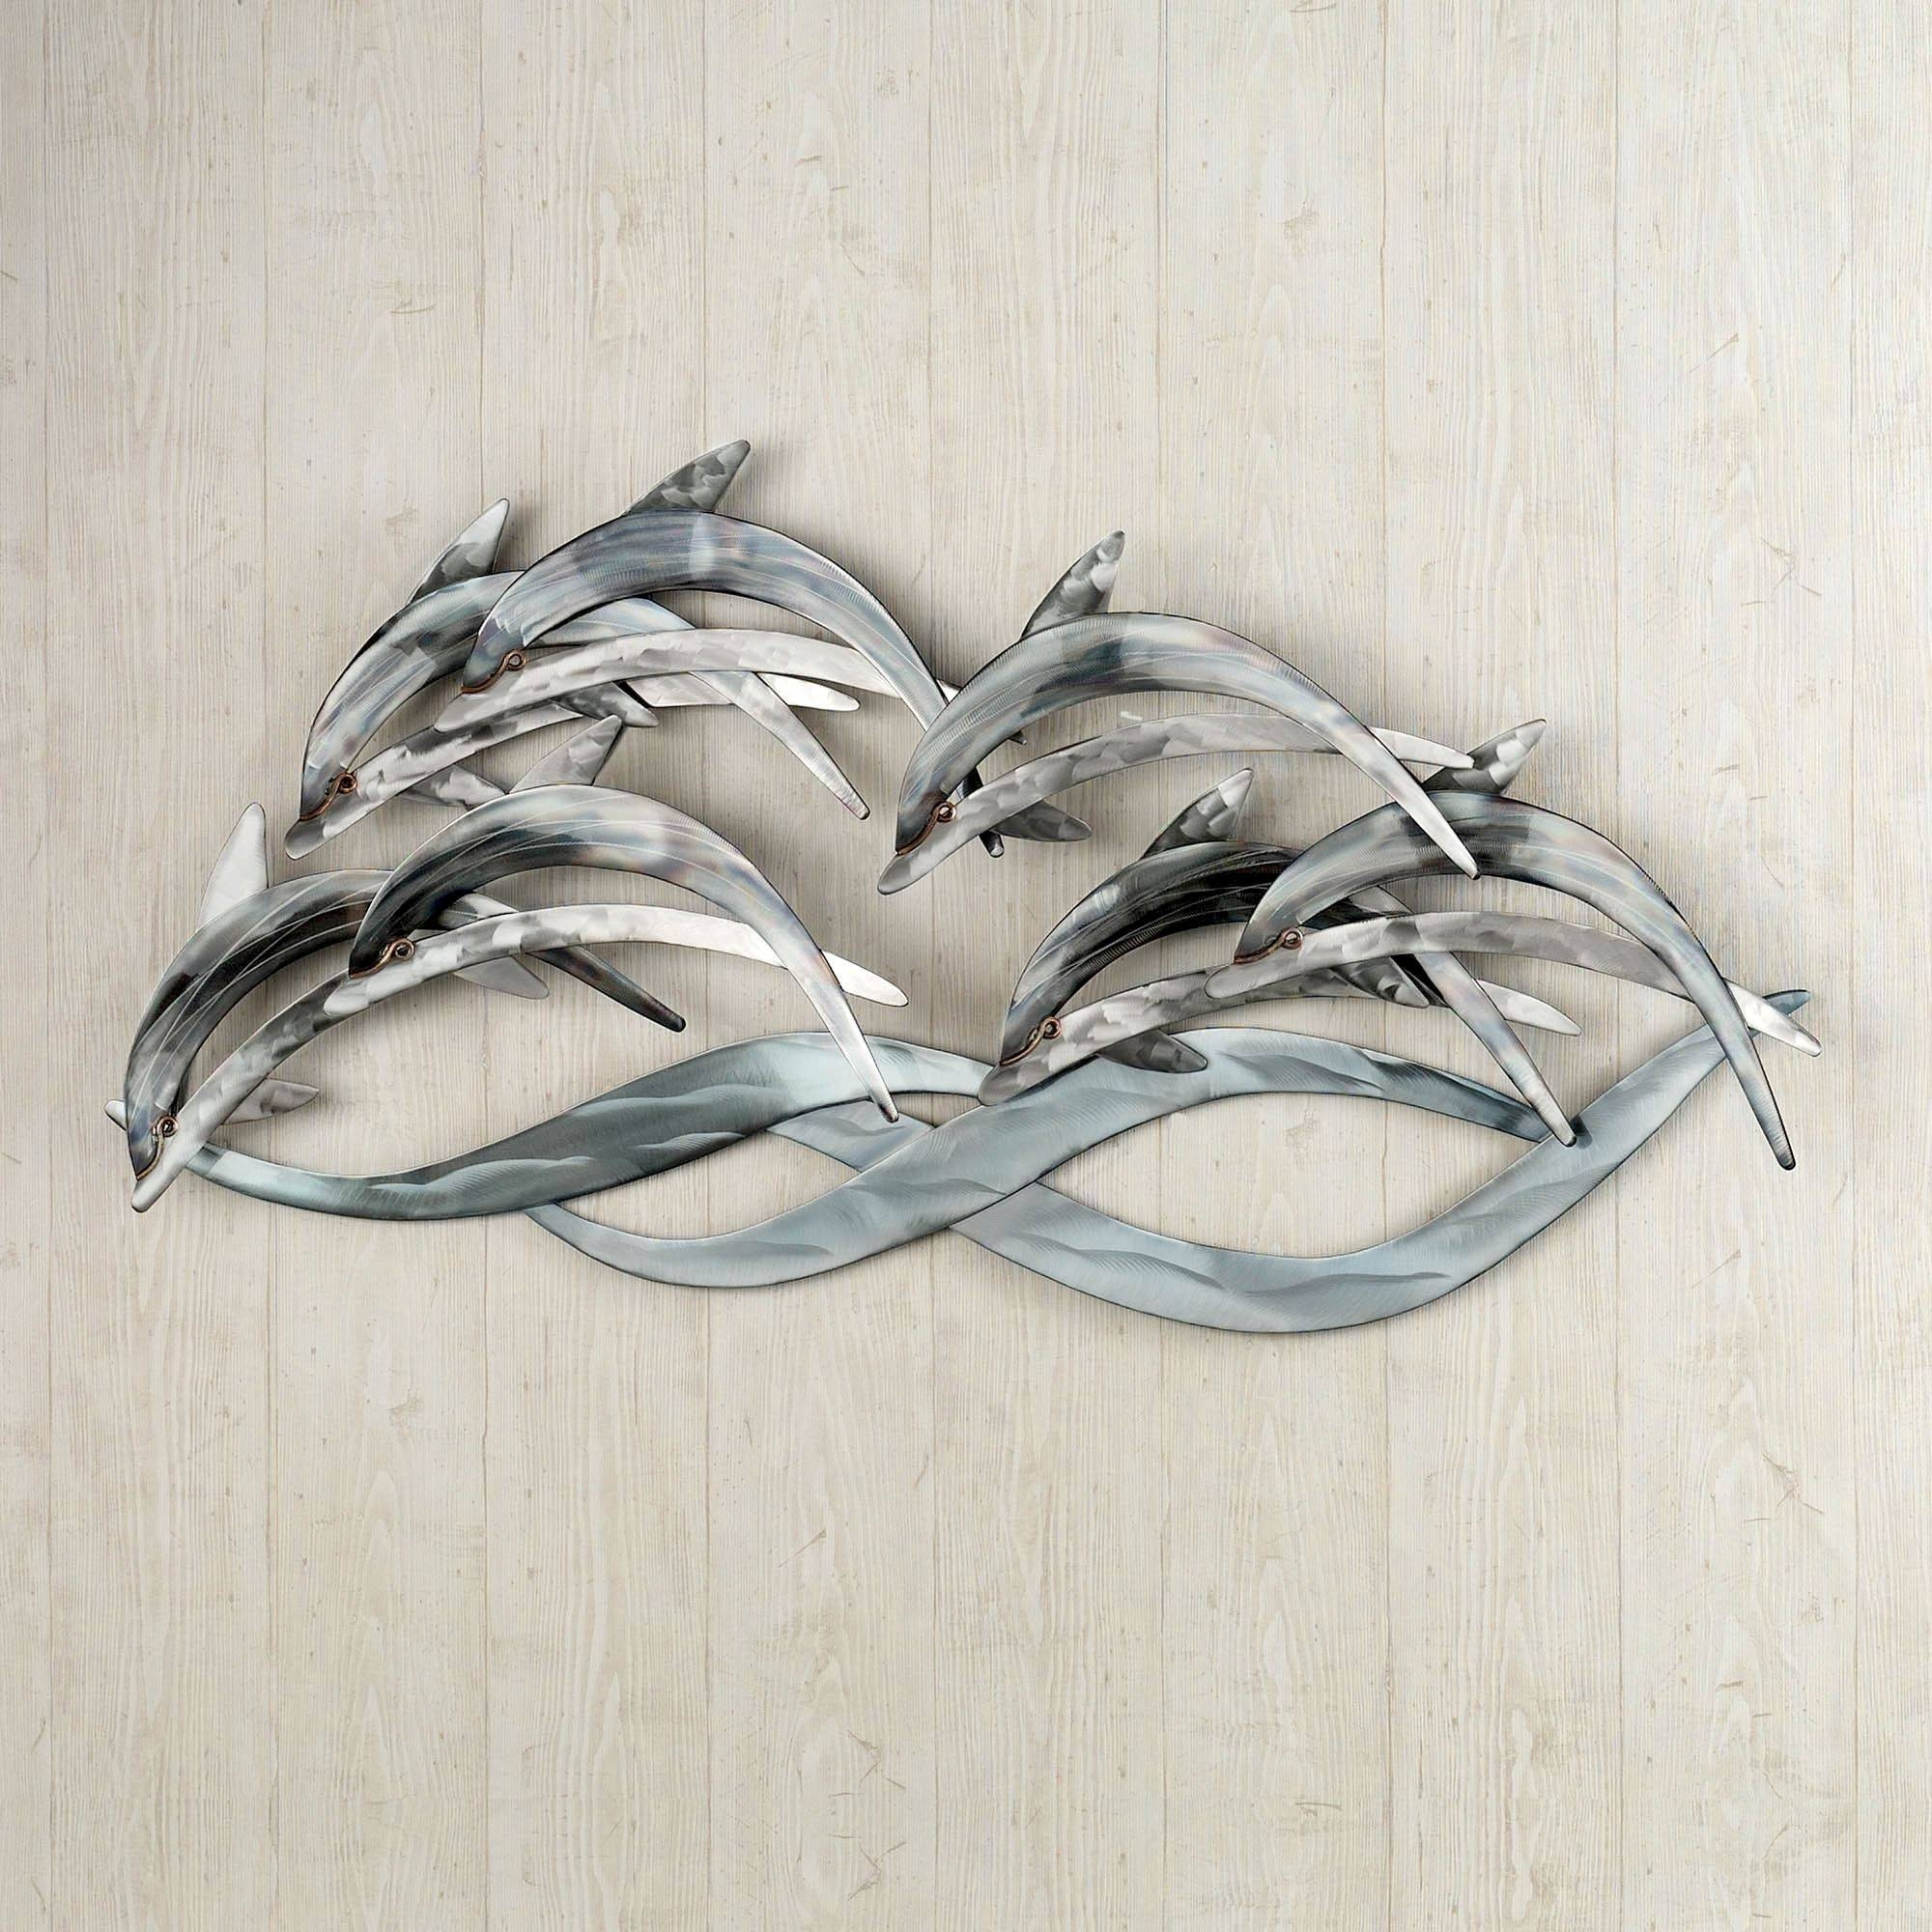 Wave Dancers Dolphin Stainless Steel Wall Sculpture For Current Stainless Steel Outdoor Wall Art (View 6 of 20)